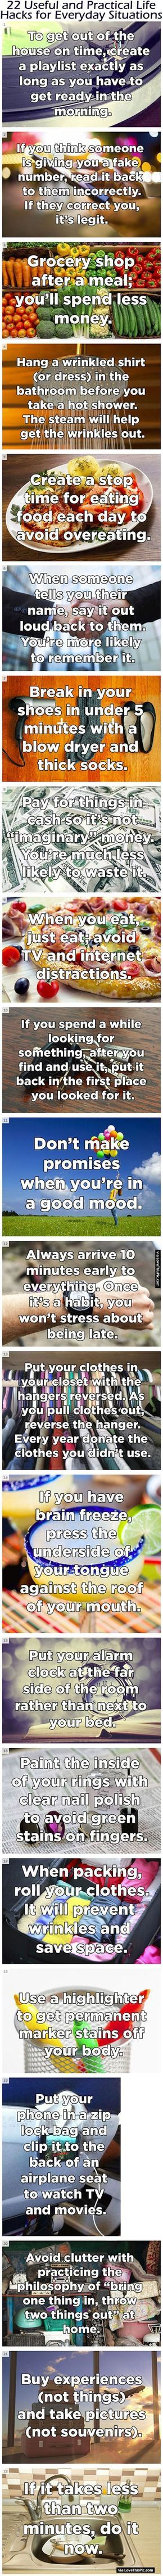 22 practical tips to make life easier 56